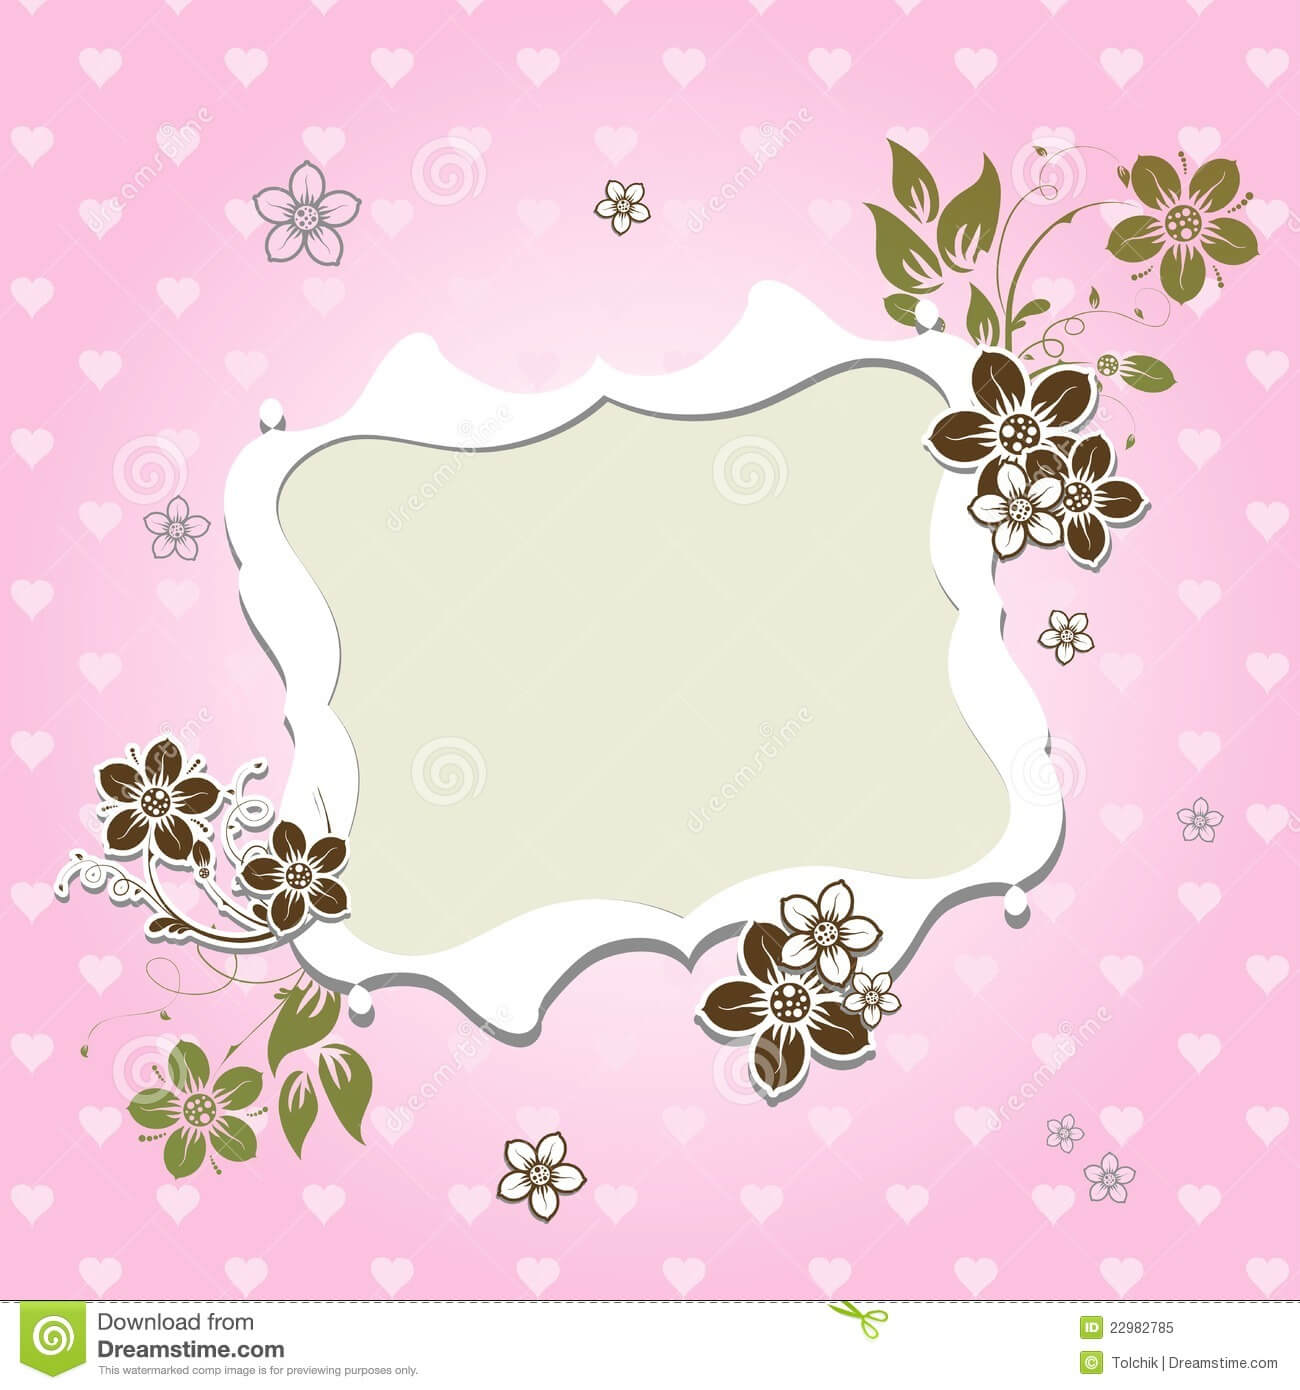 Template Greeting Card Stock Vector. Illustration Of Beauty With Regard To Free Blank Greeting Card Templates For Word